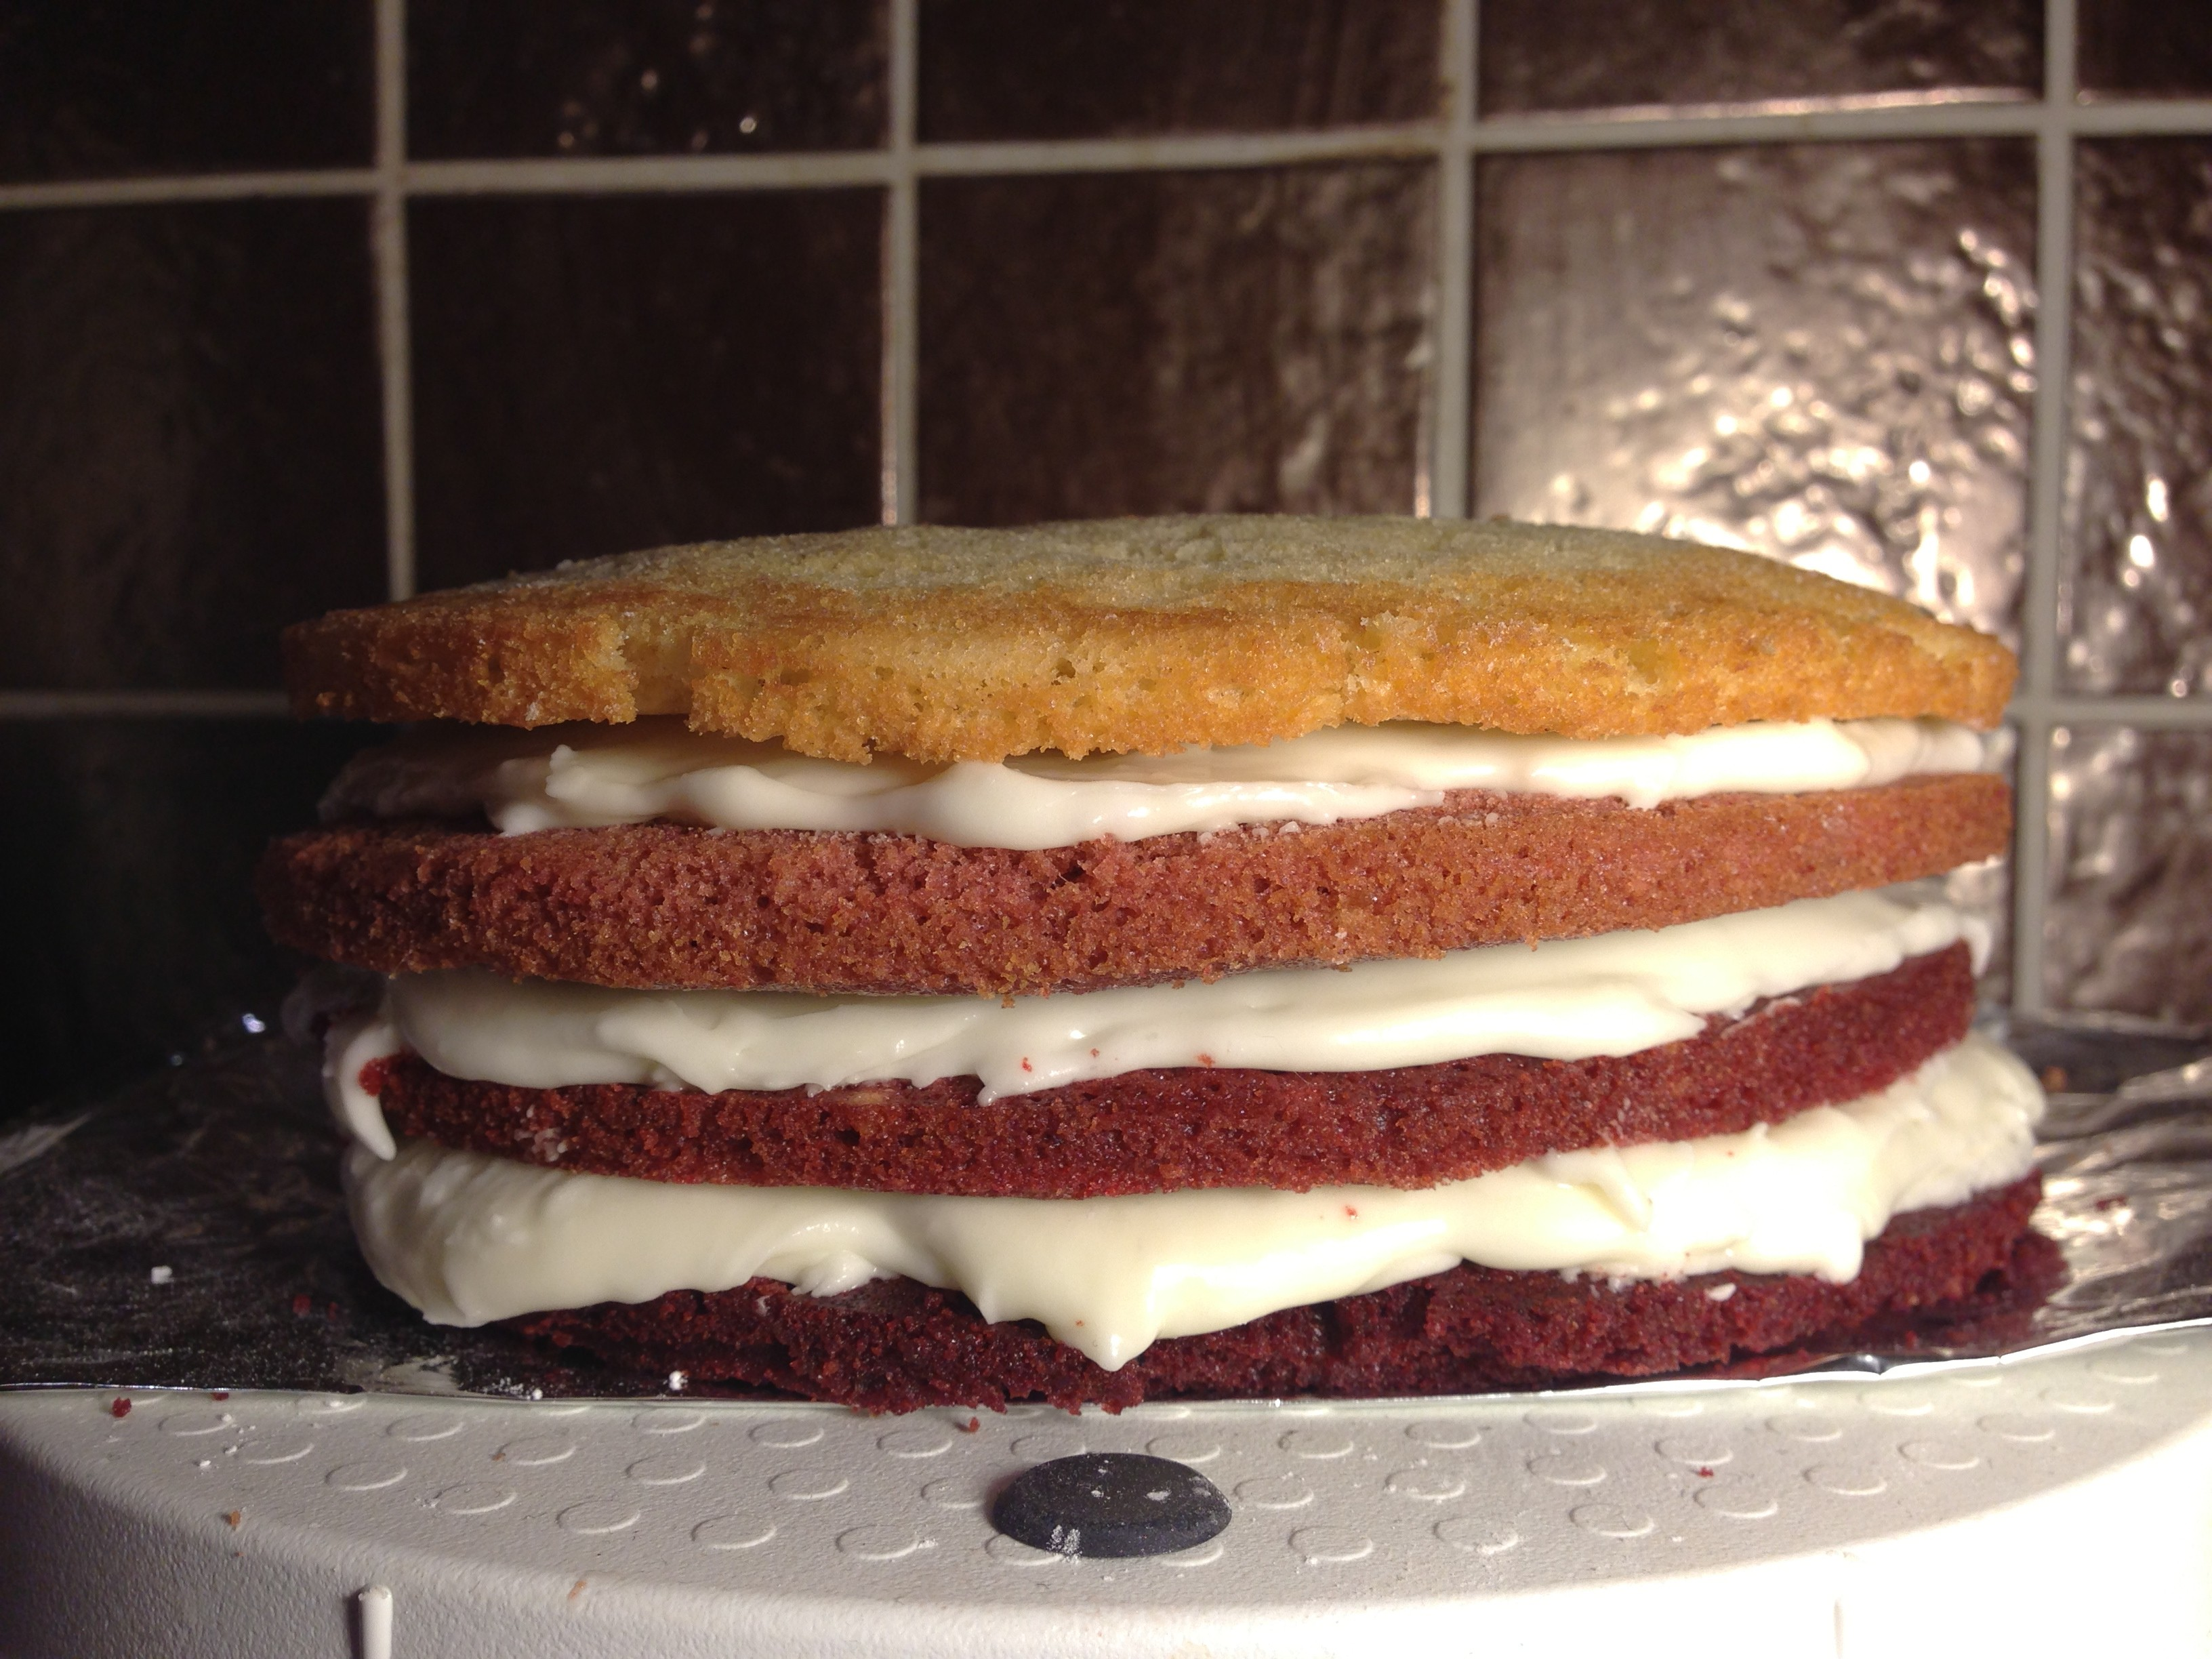 How To Cut And Stack A Cake Red Velvet